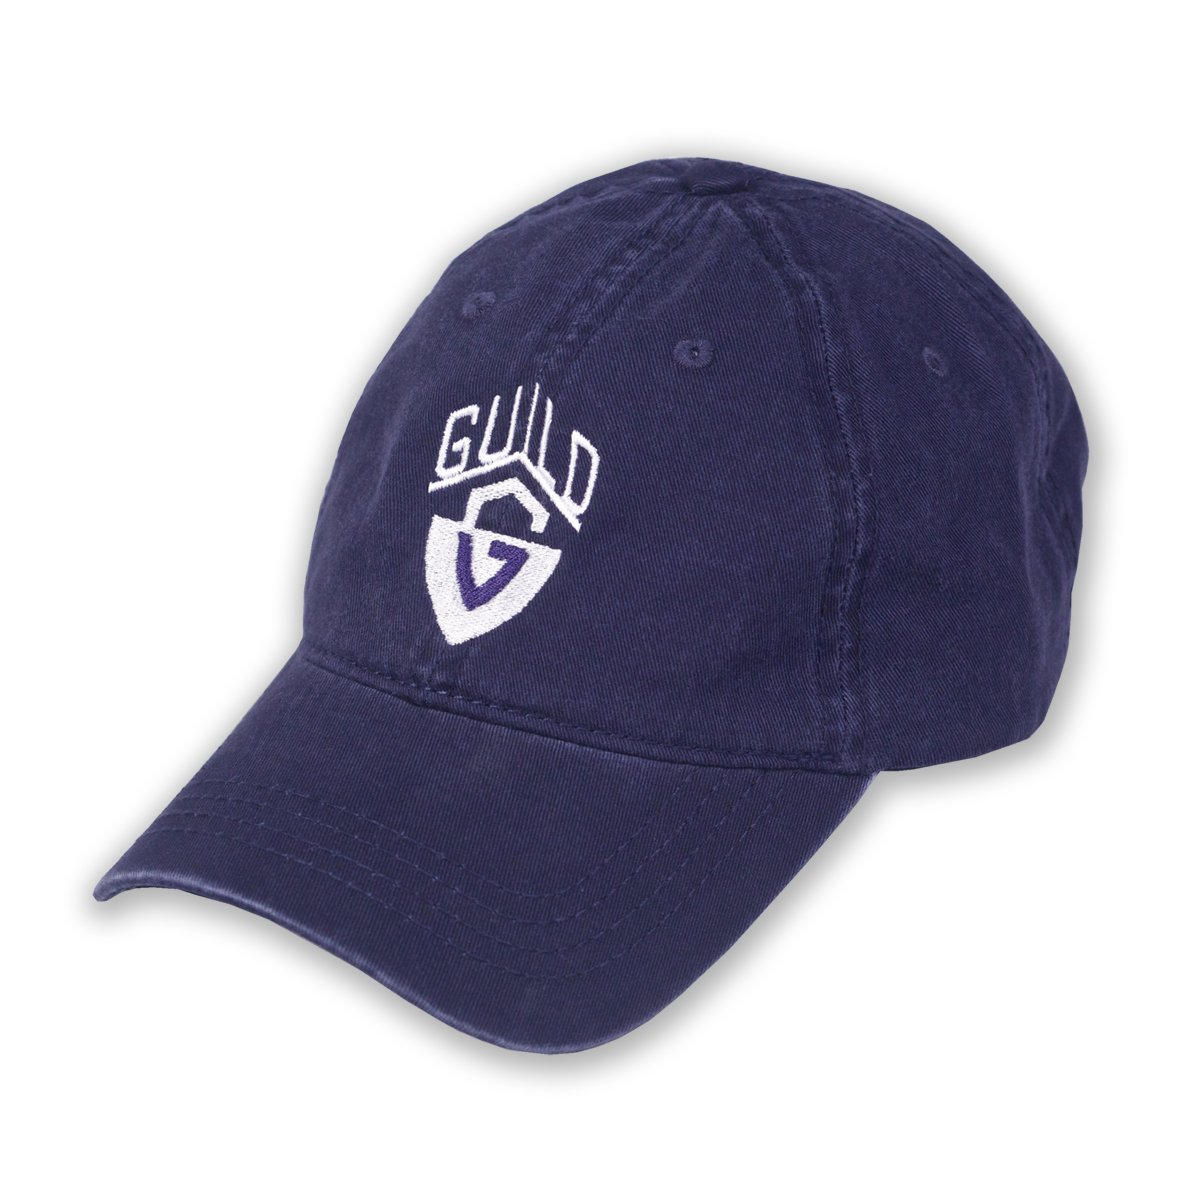 Navy Guild Guitars Relaxed Fit Baseball Hat